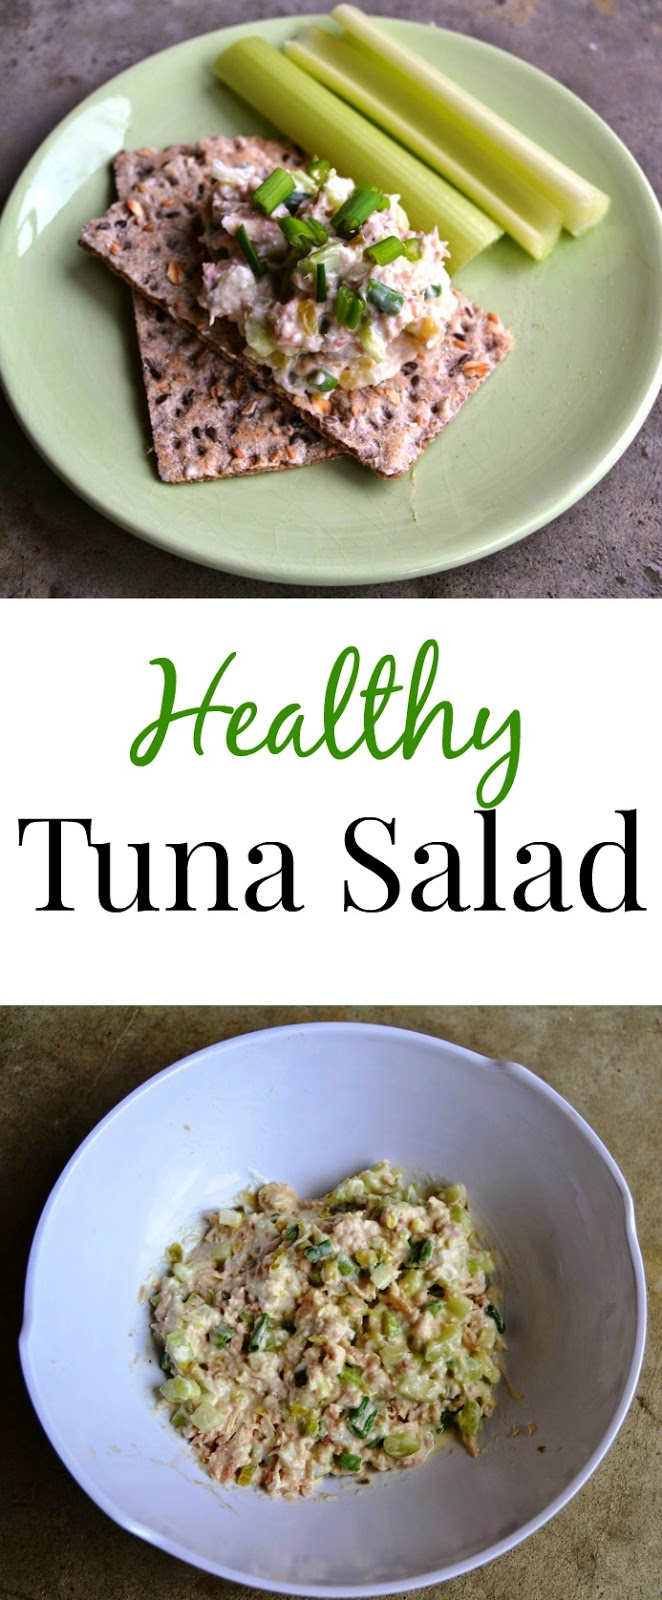 This healthy tuna salad is made lighter with Greek yogurt and is packed with vegetables for a nutritious and filling meal! www.nutritionistreviews.com